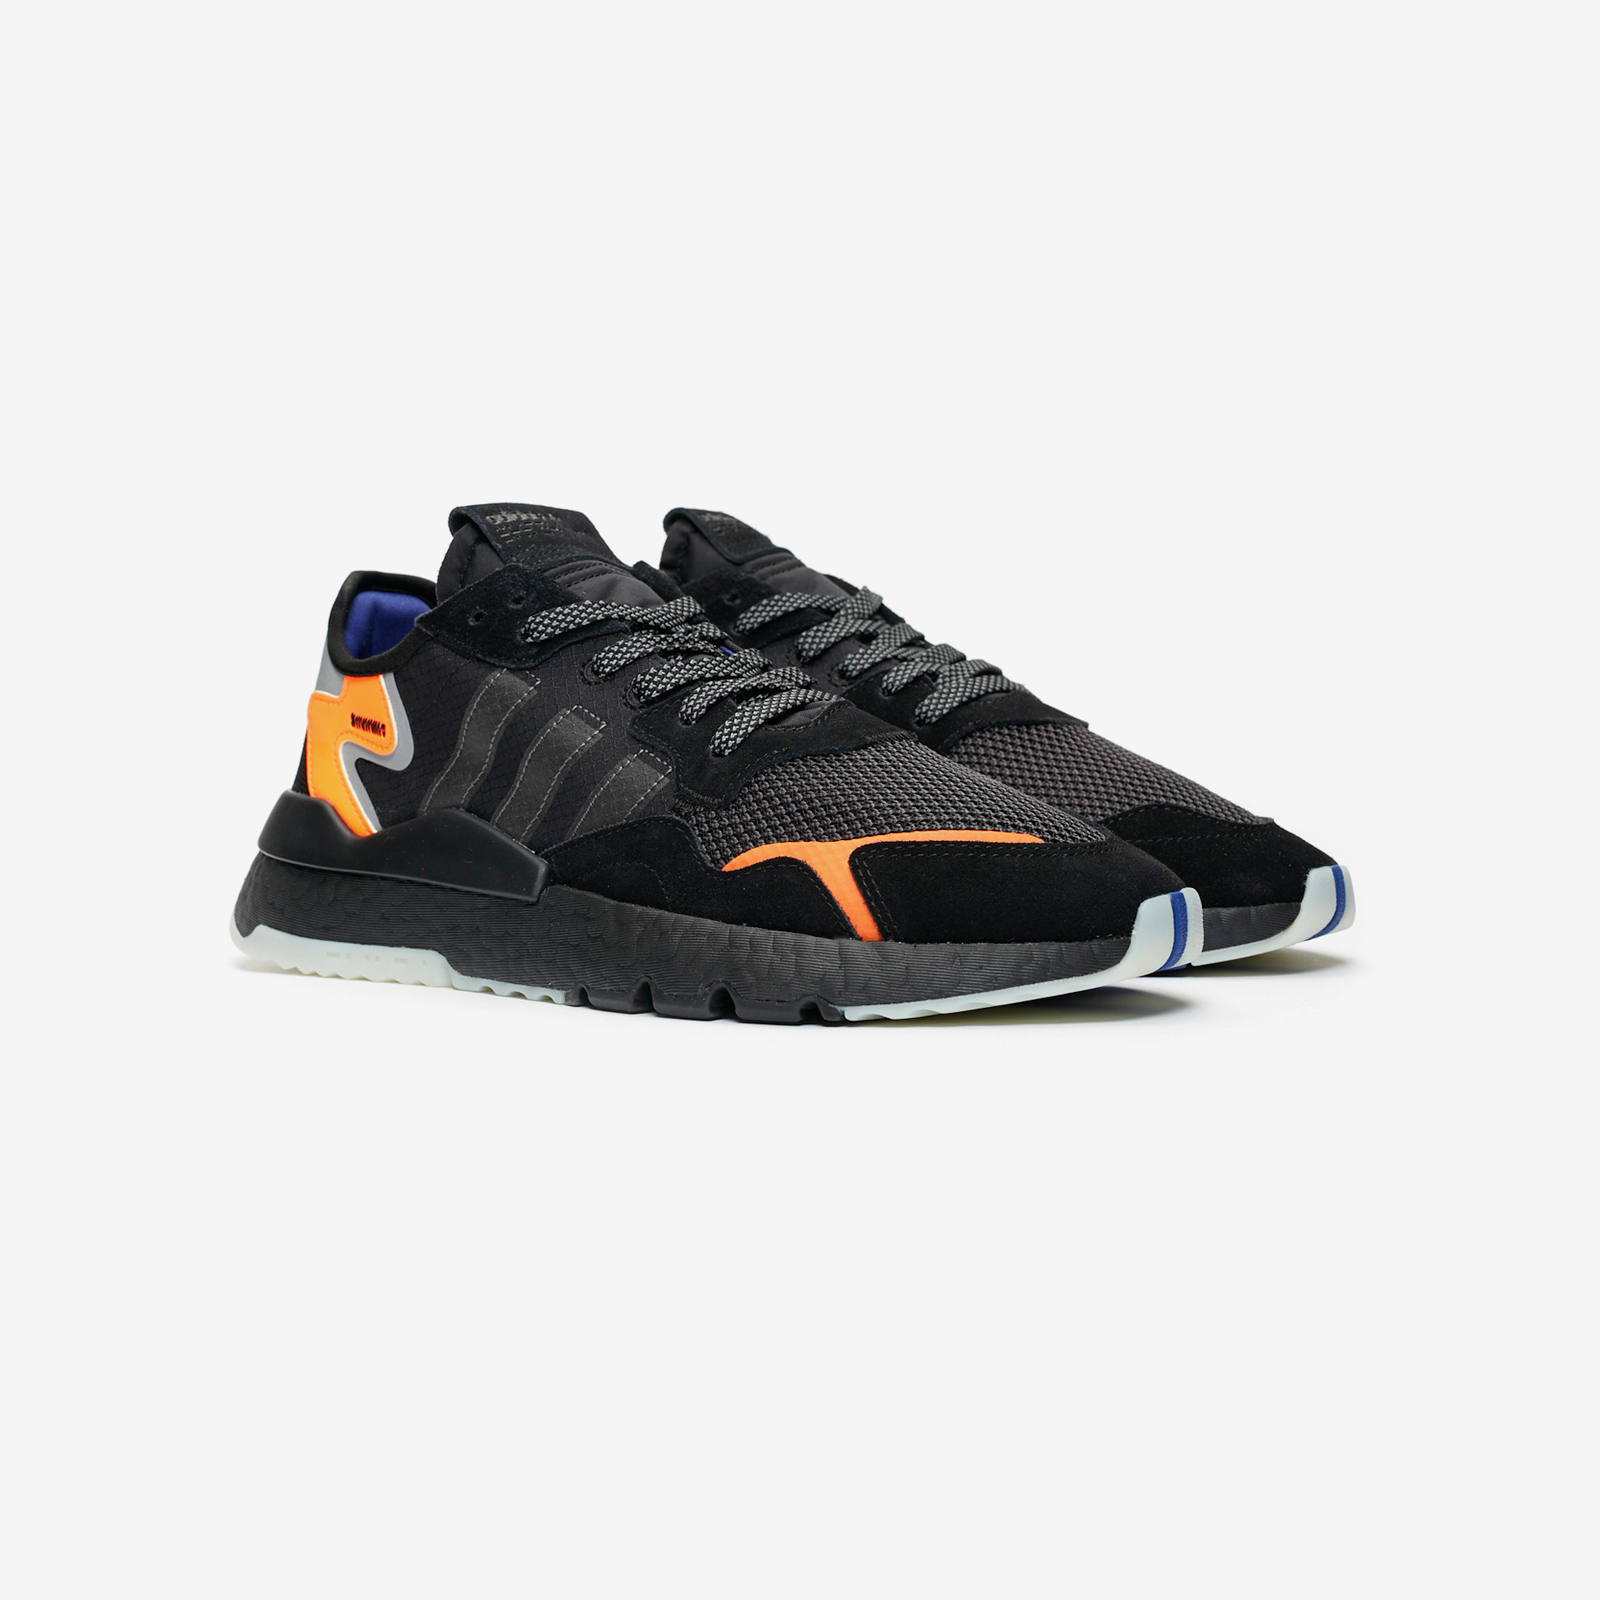 meet 99730 cf875 adidas Originals Nite Jogger